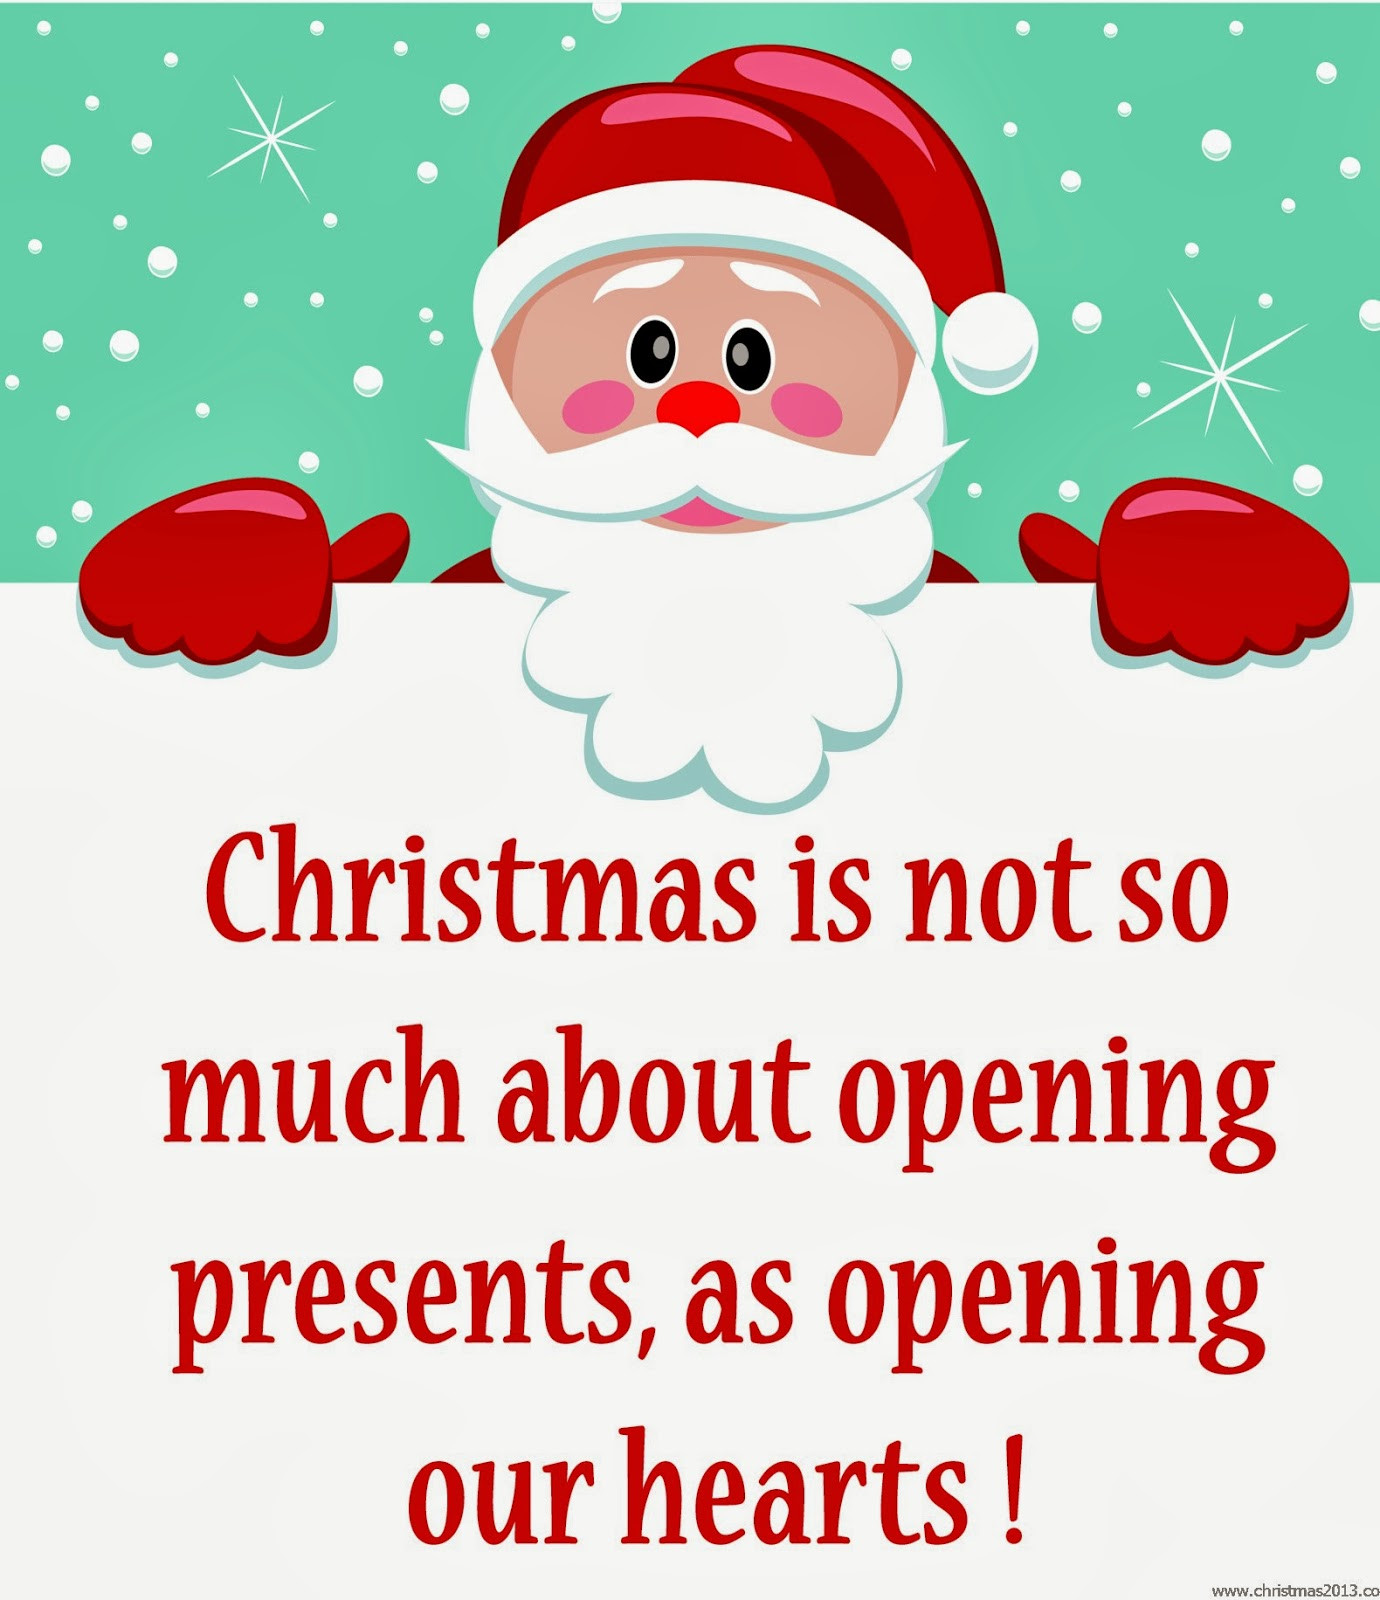 Christmas Quotes For Cards  25 Best Christmas Quotes And Wishes Quotes Hunter